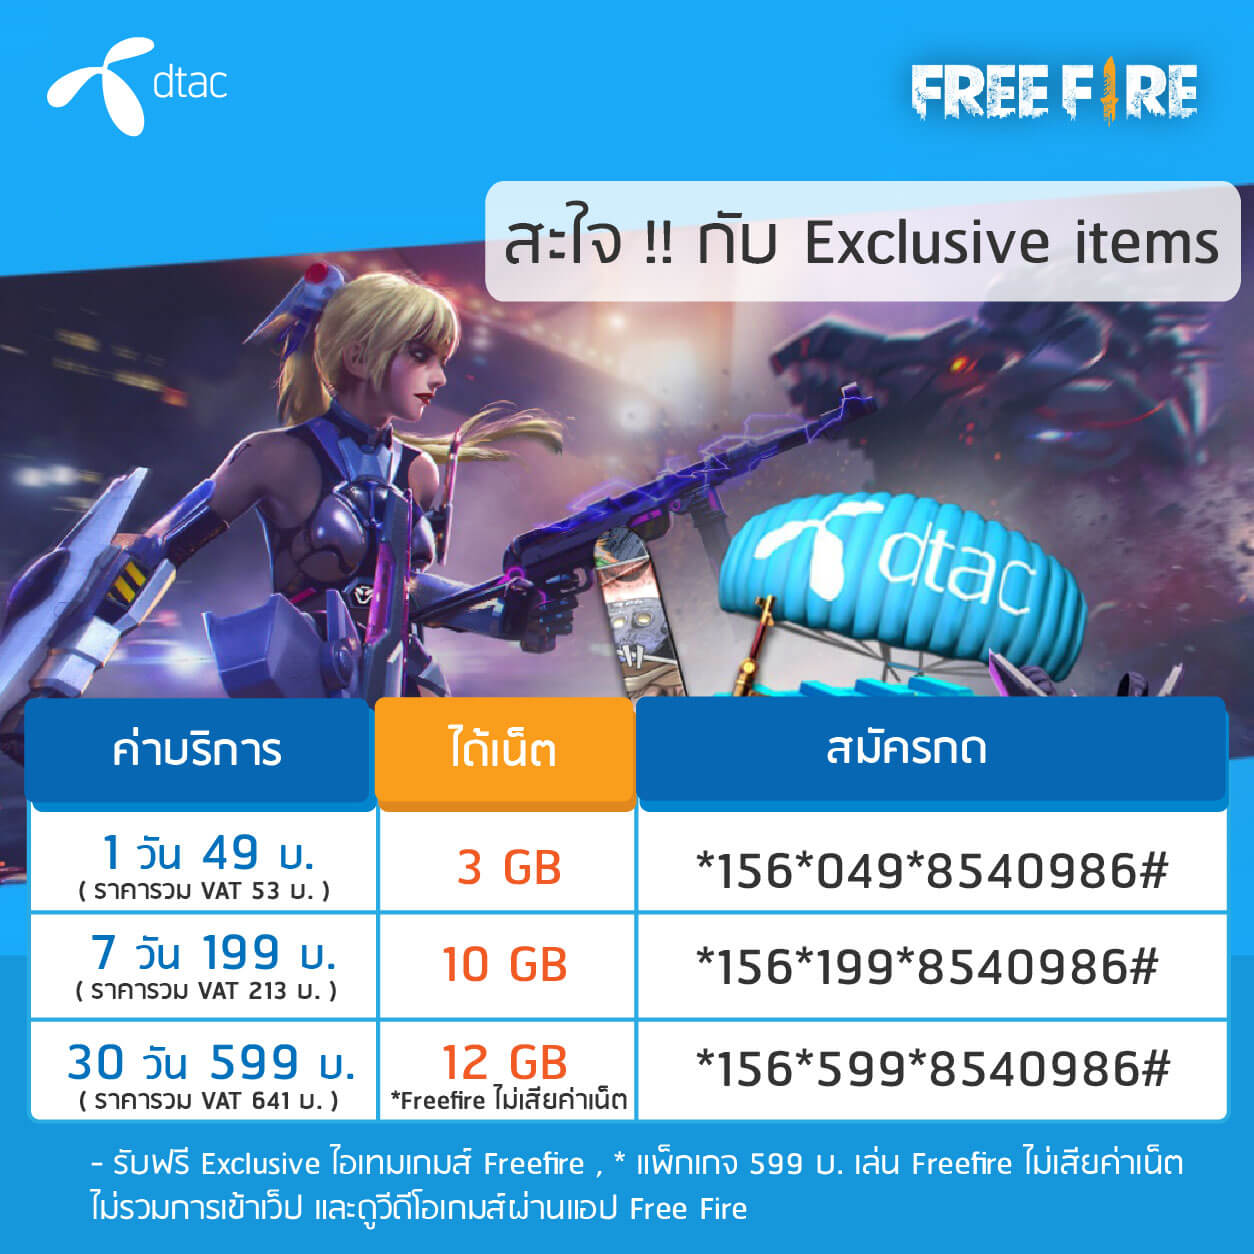 Free Fire Dtac